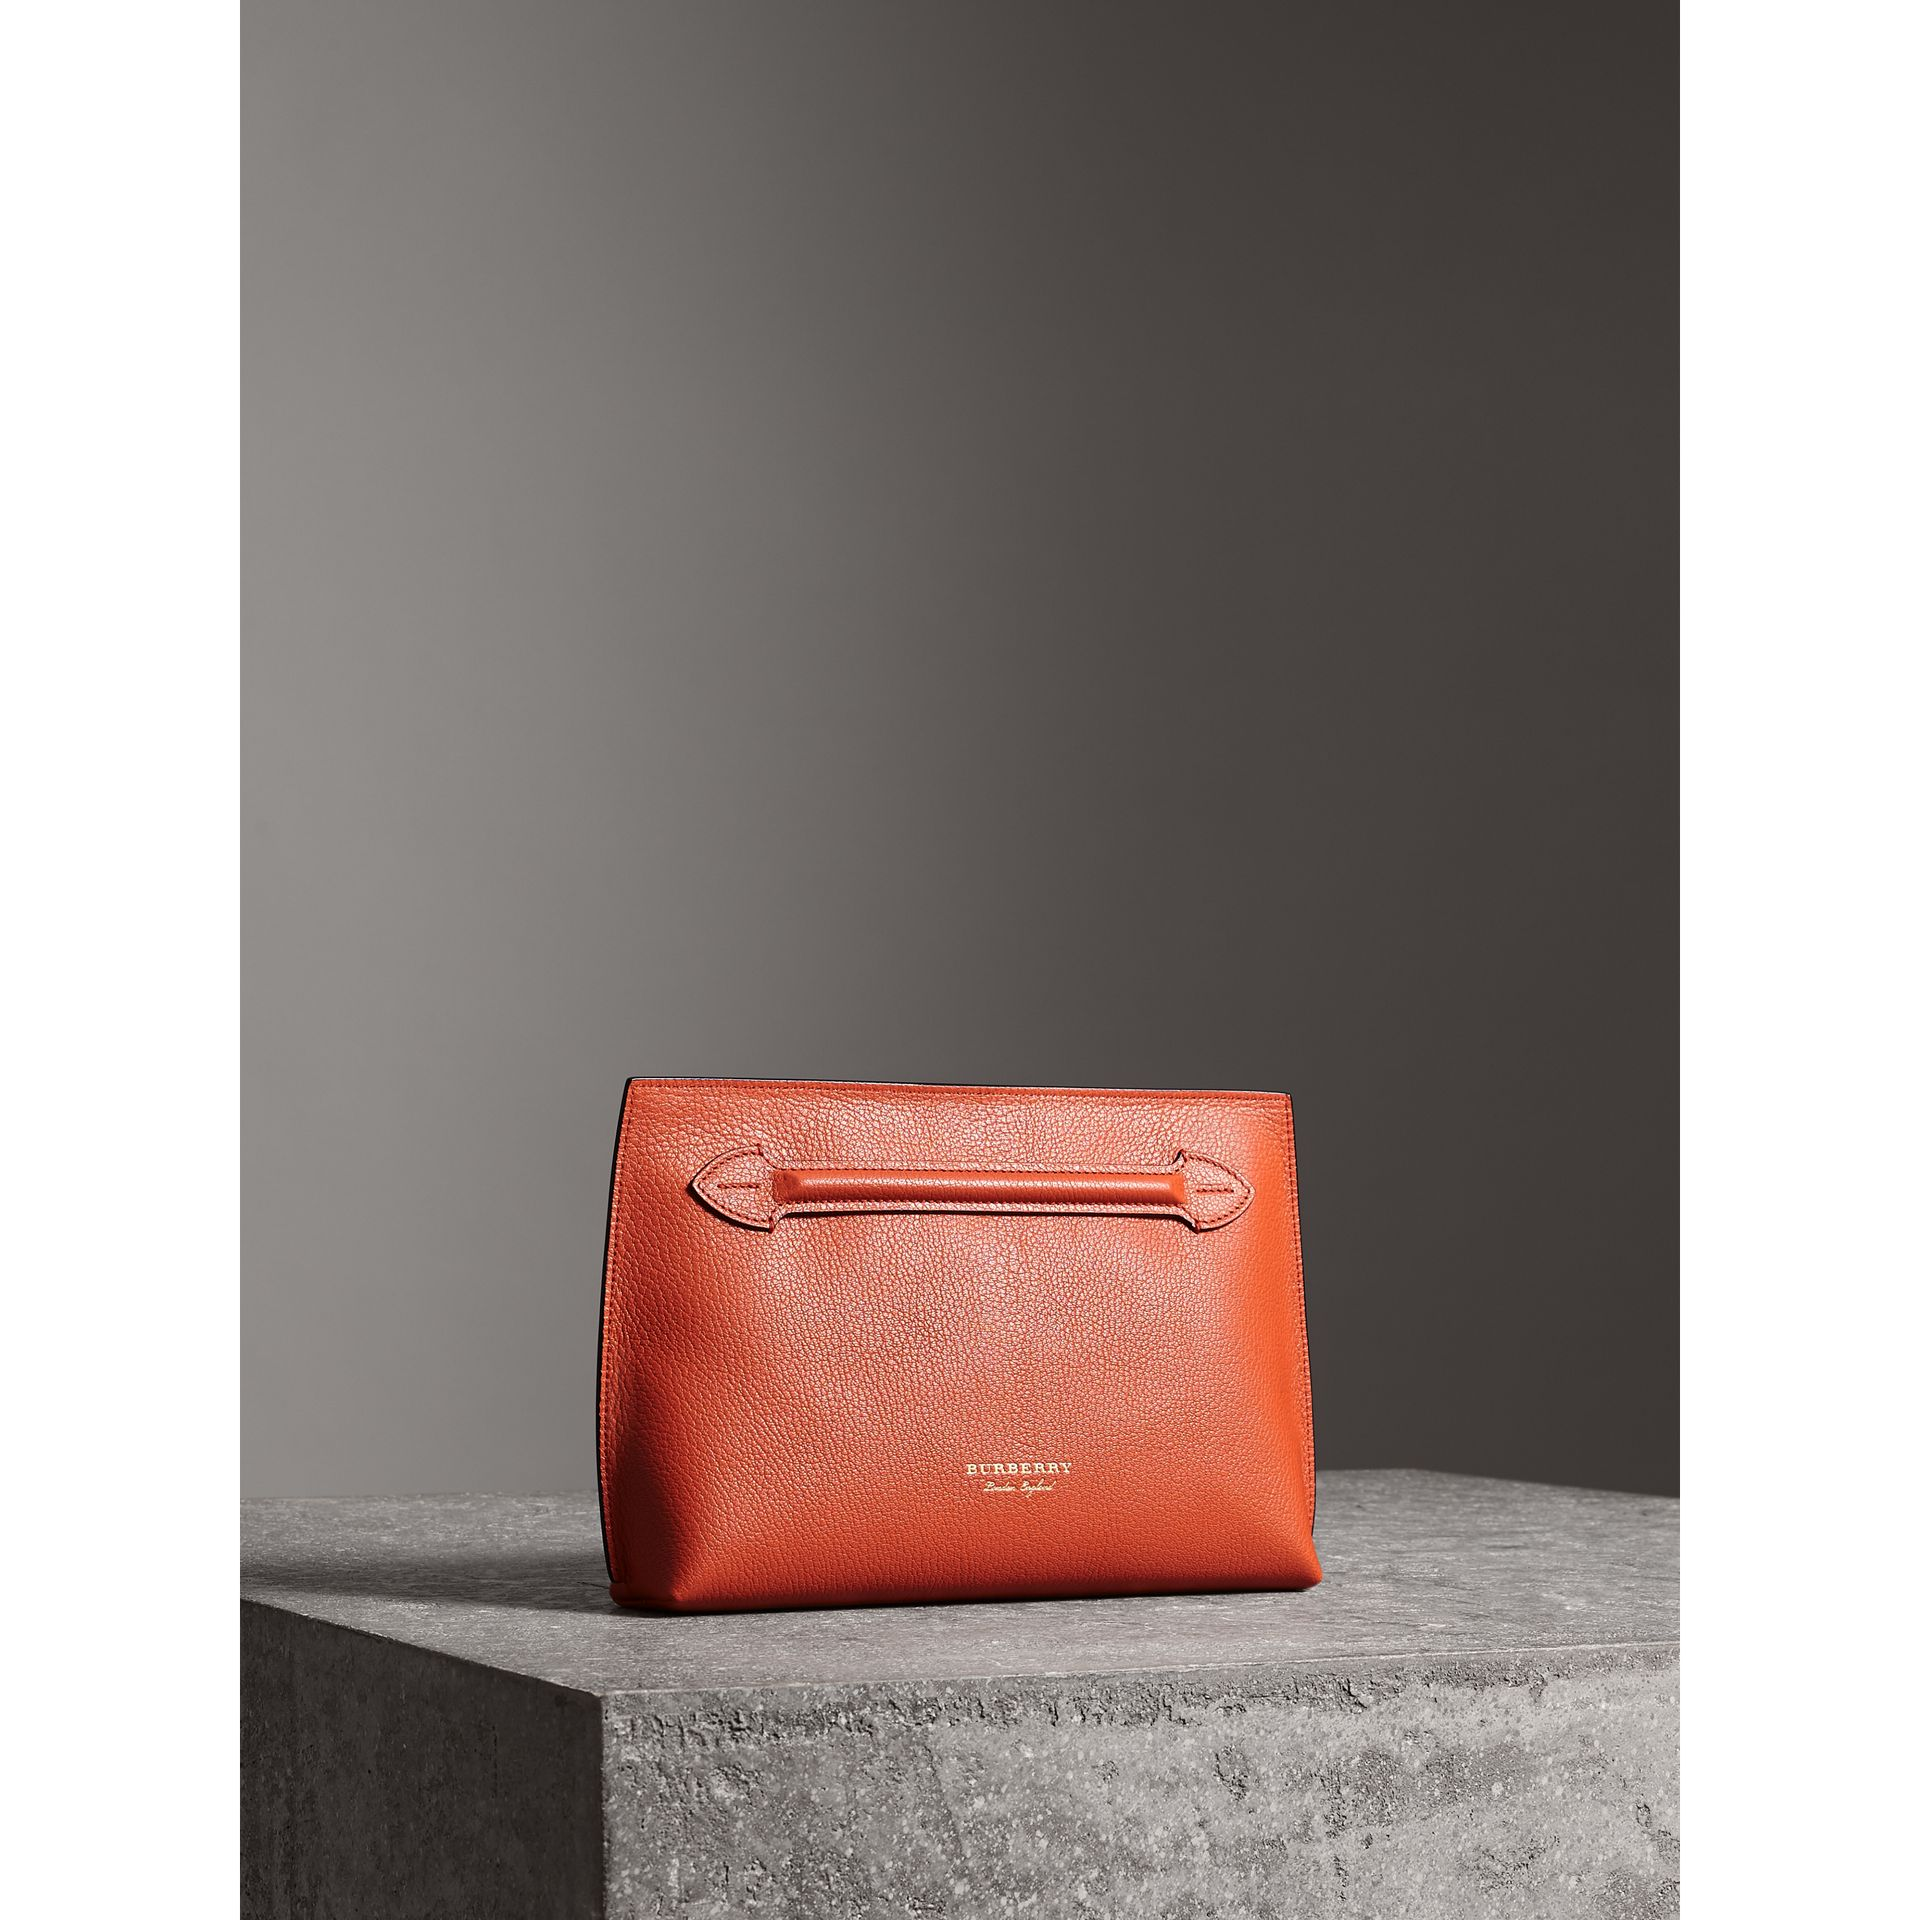 Grainy Leather Wristlet Clutch in Clementine - Women | Burberry United Kingdom - gallery image 8